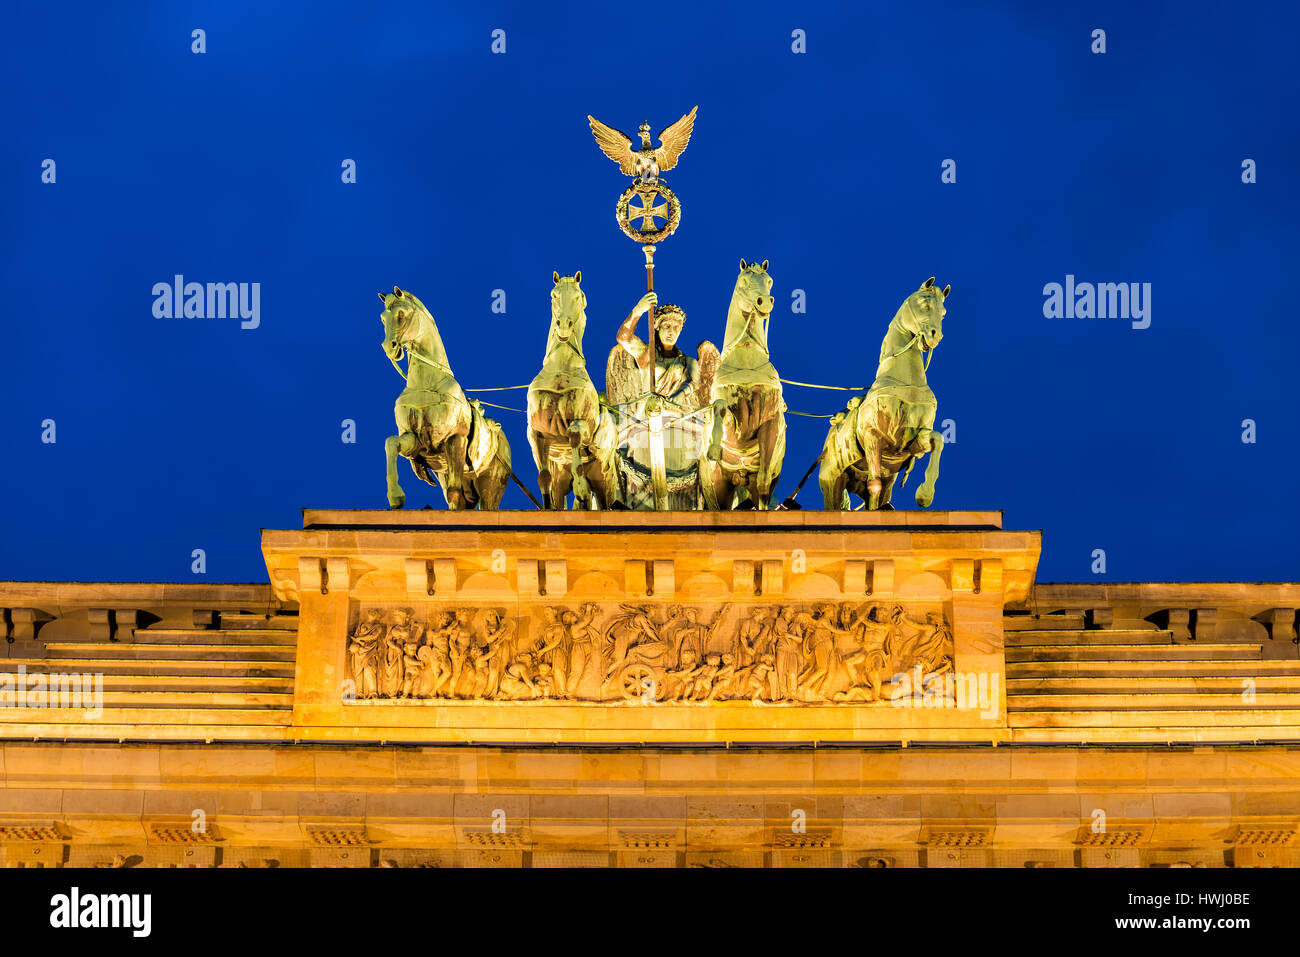 Brandenburg gate in Berlin - Stock Image